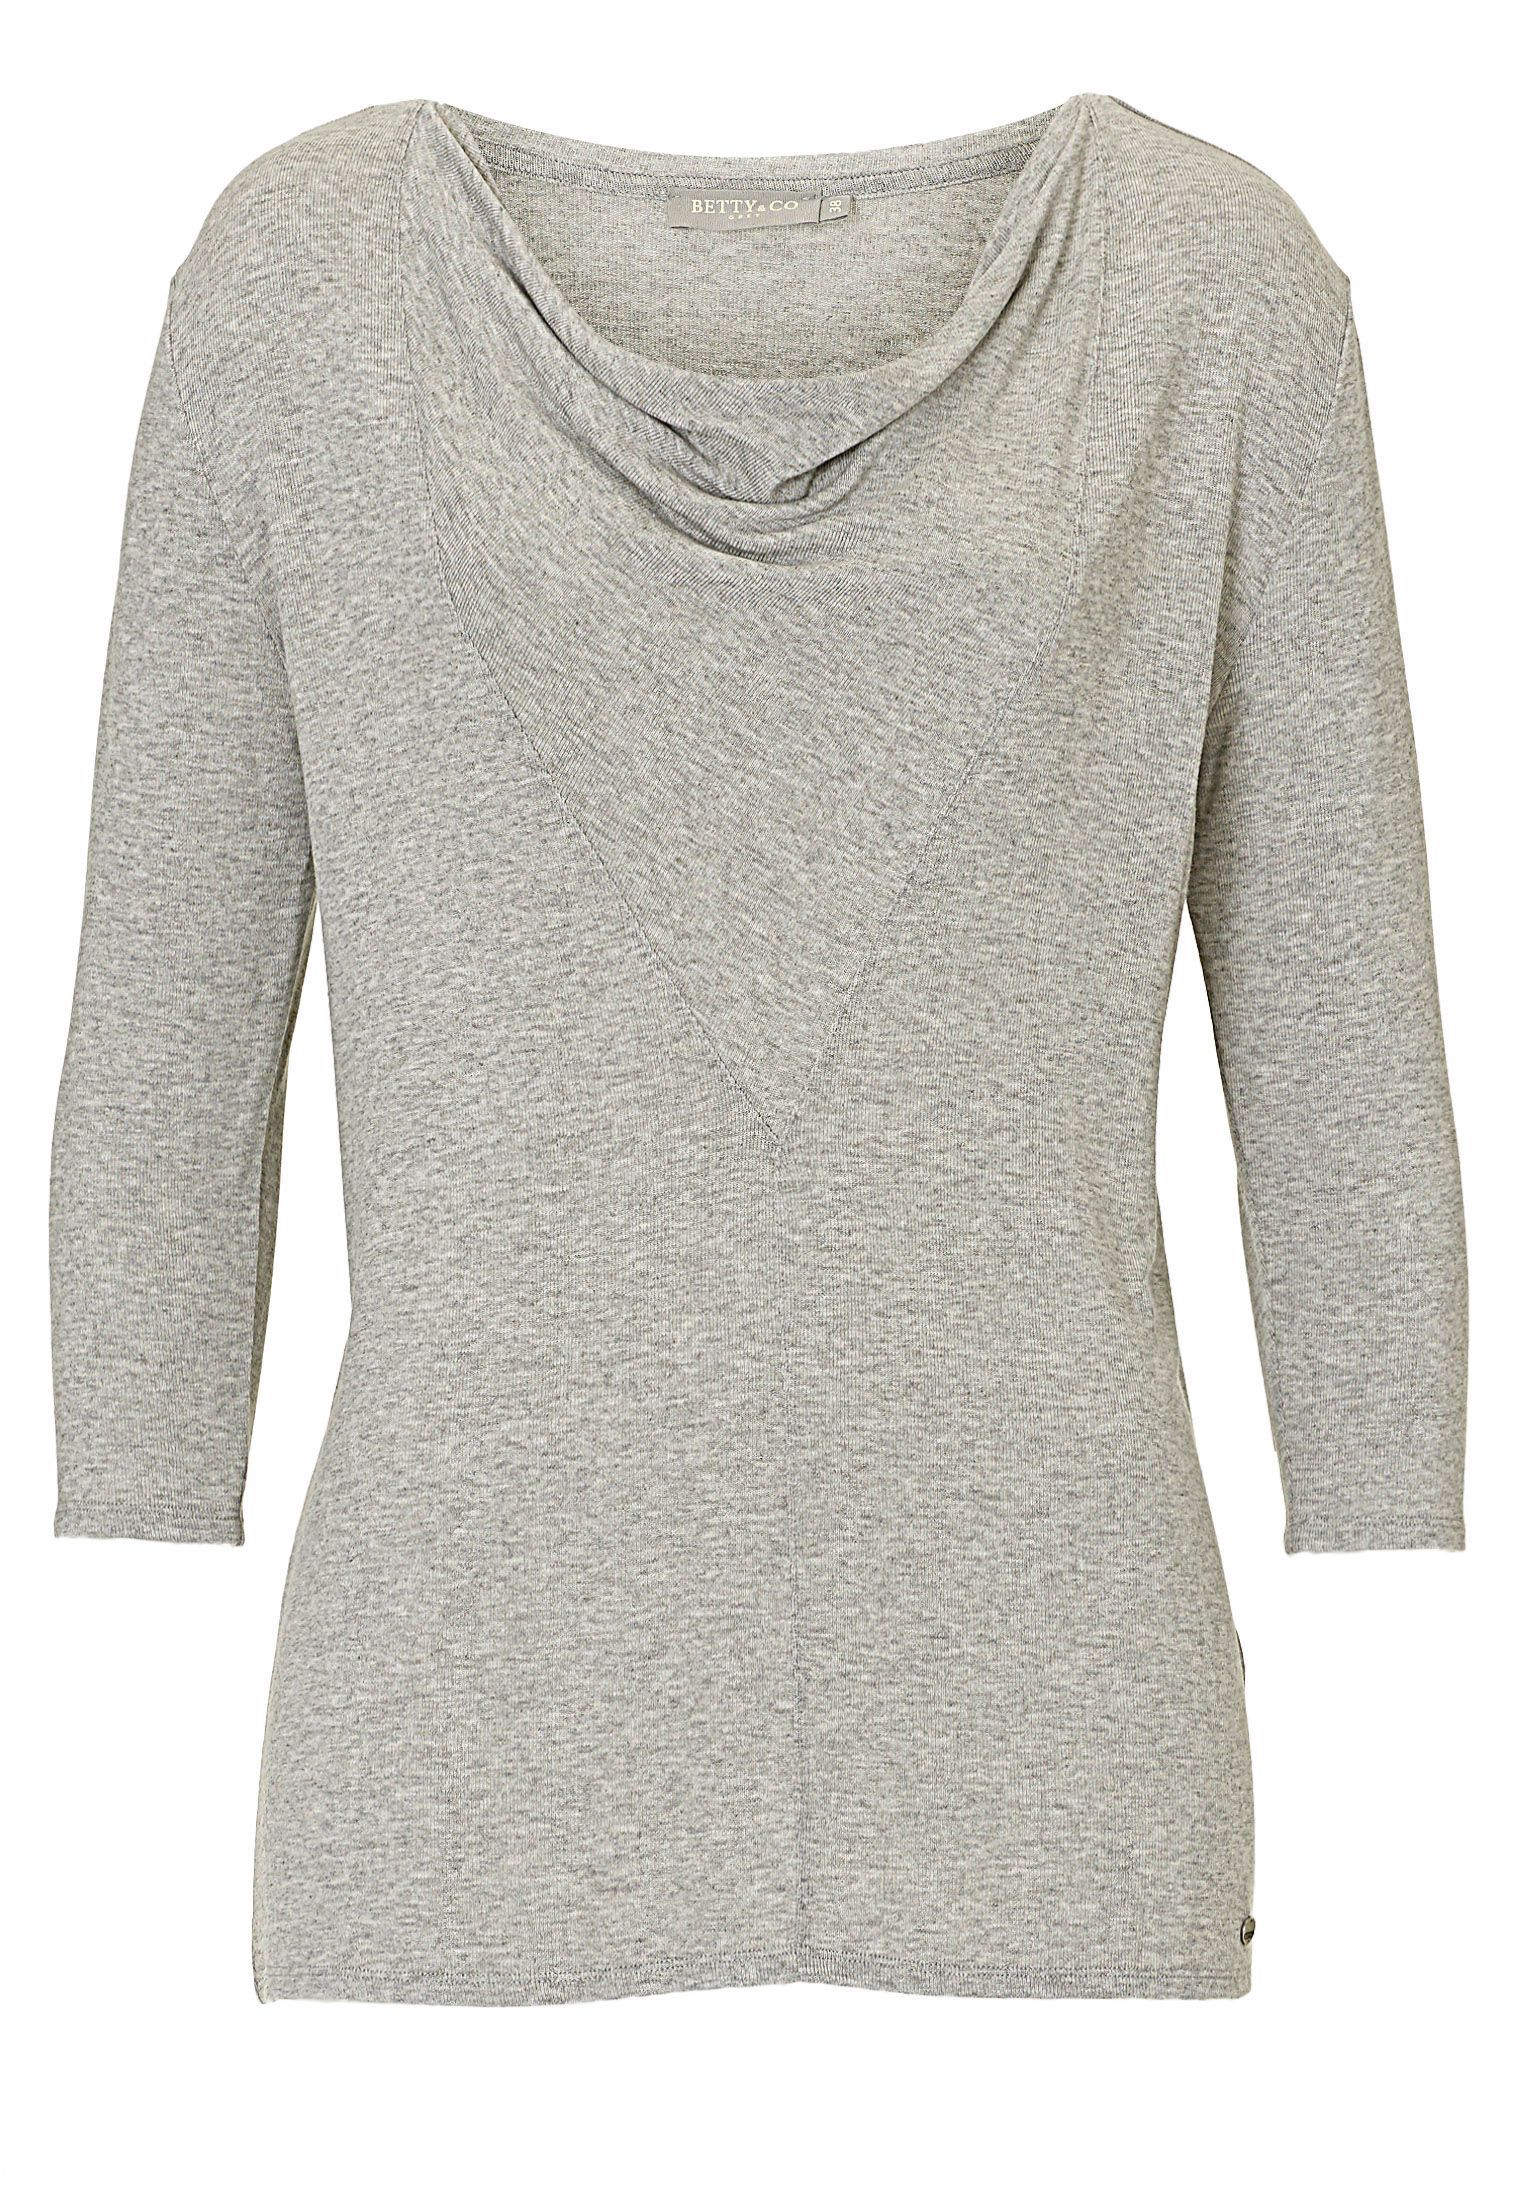 Betty & Co. Fine knit tunic top, Grey